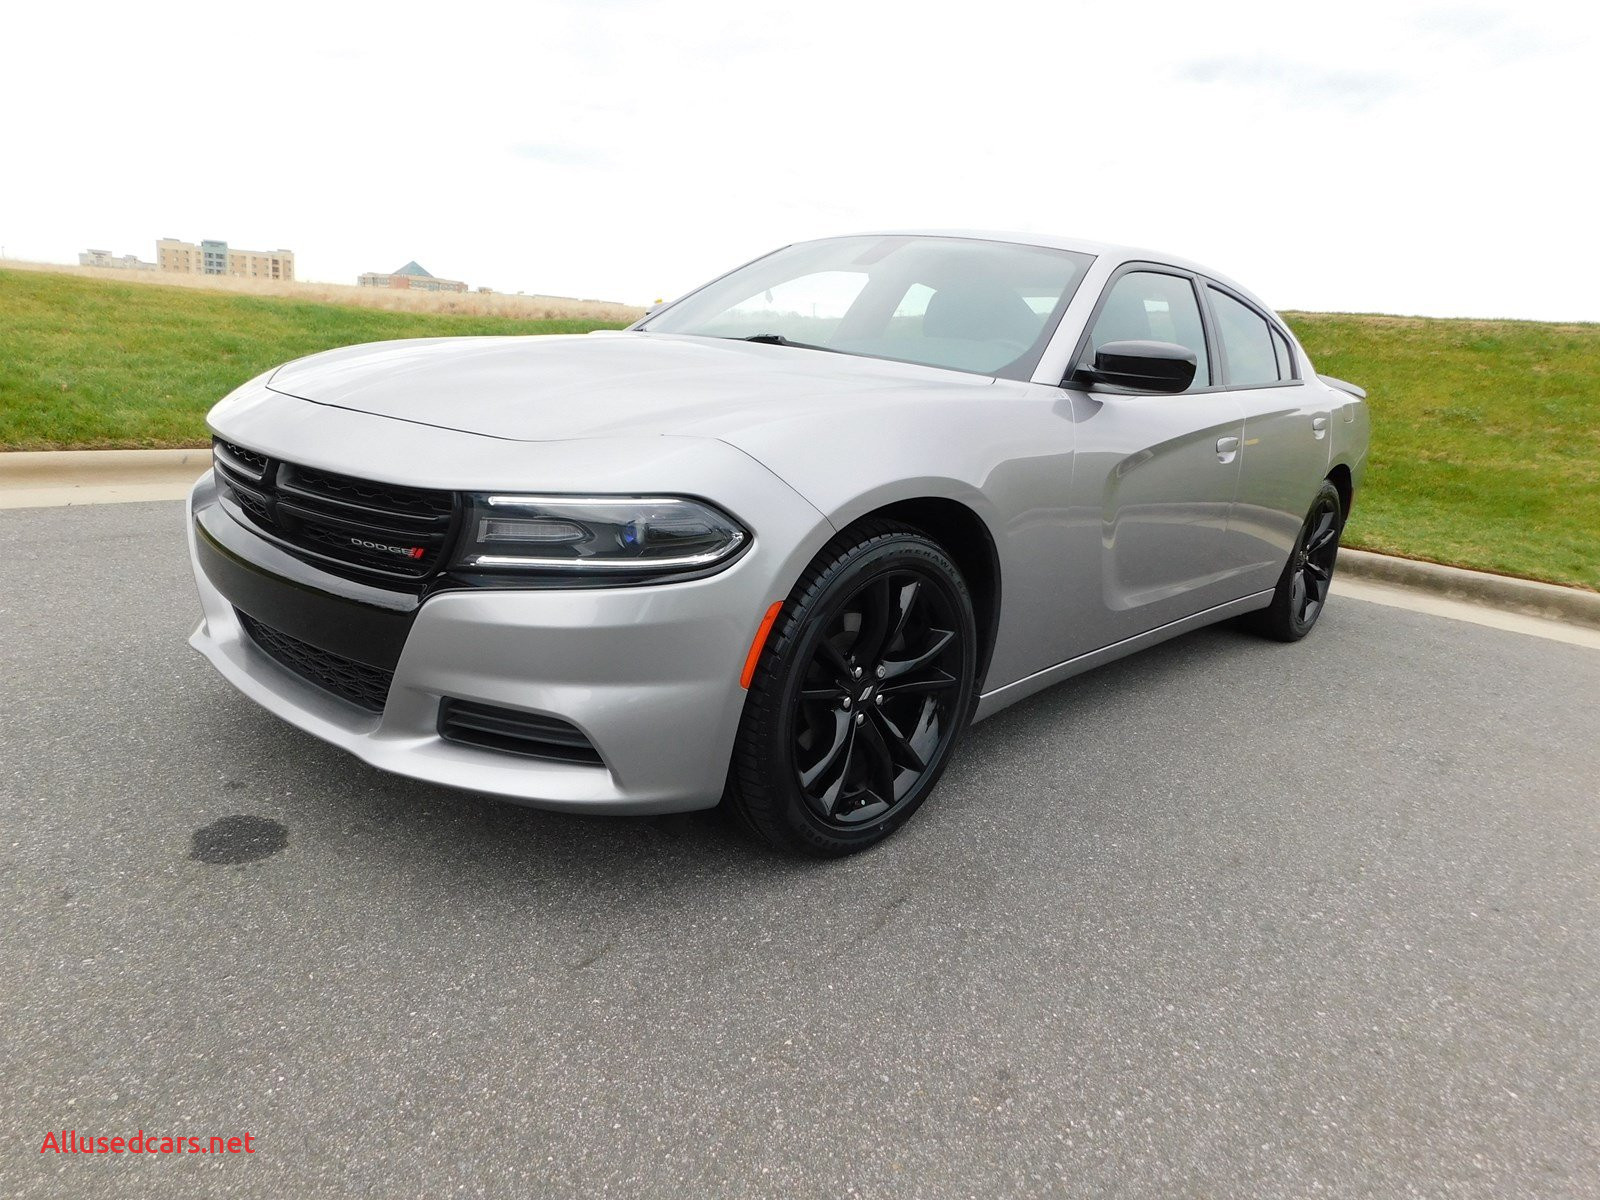 2018 Dodge Charger Sxt Luxury Certified Pre Owned 2018 Dodge Charger Sxt Rwd Sedan